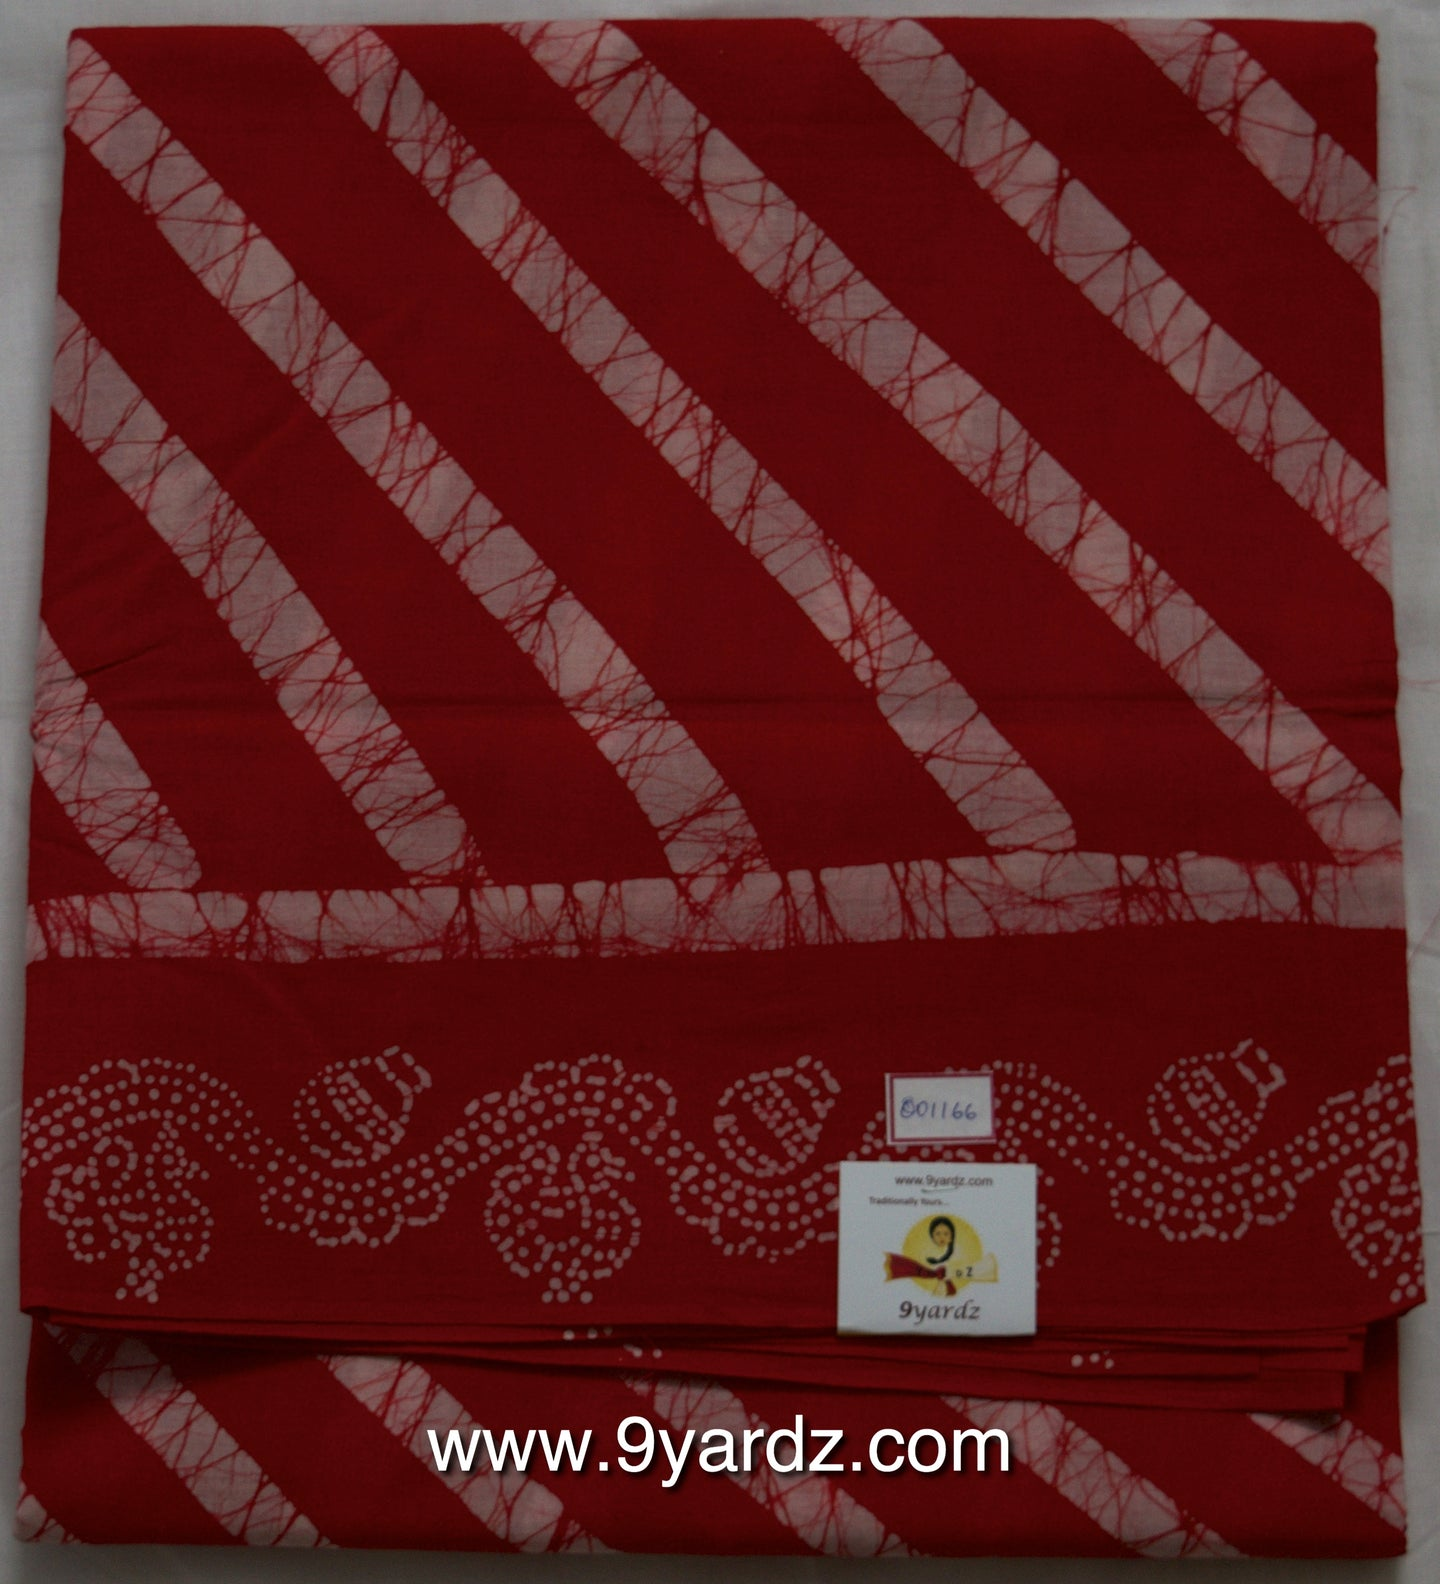 Swadesi- Sungudi 9 yards